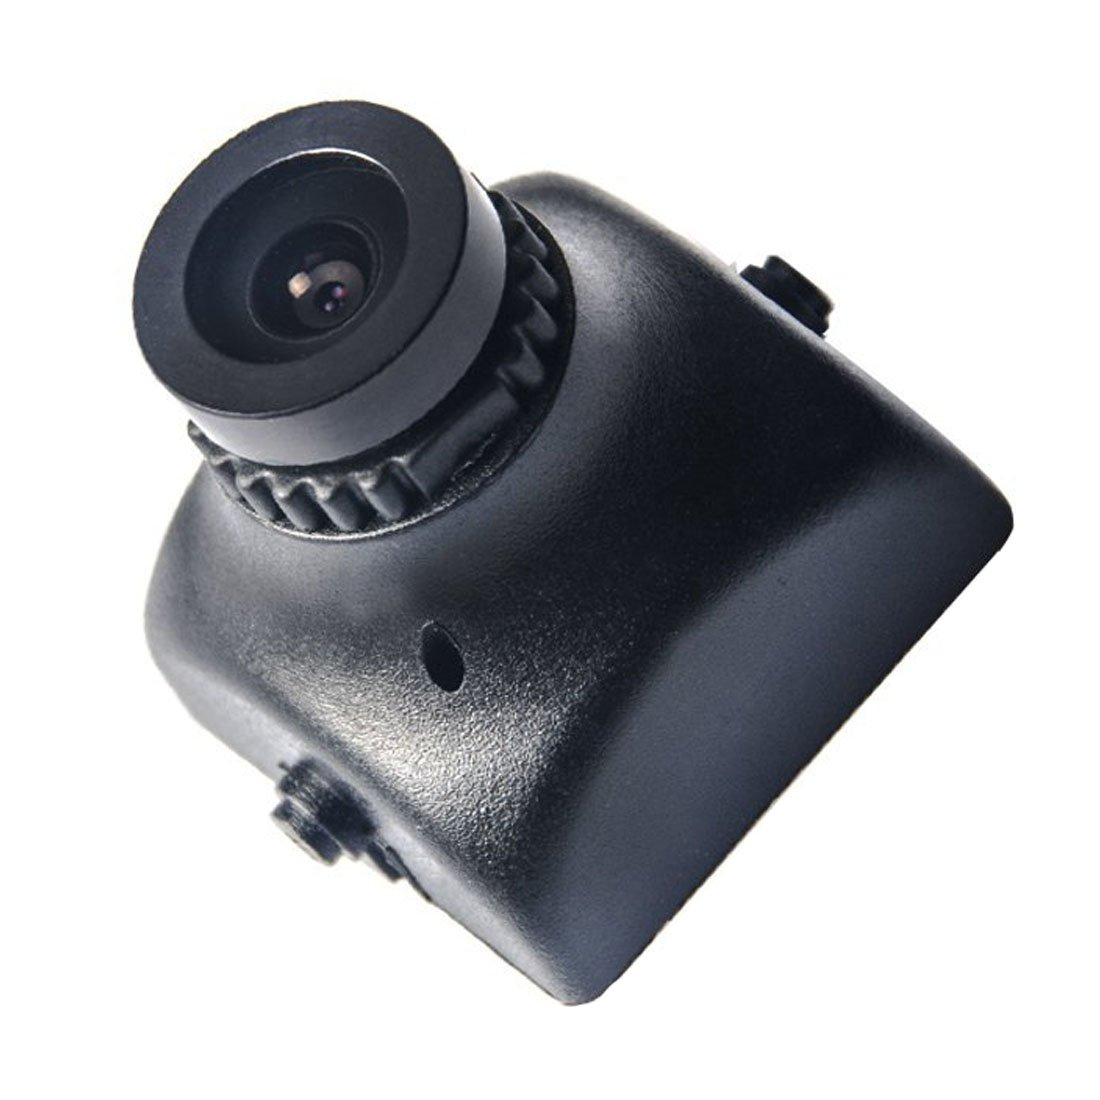 GOQOTOMO GC04 Mini 2.8MM 700TVL NTSC Automatic gain CMOS Camera for FPV Drone